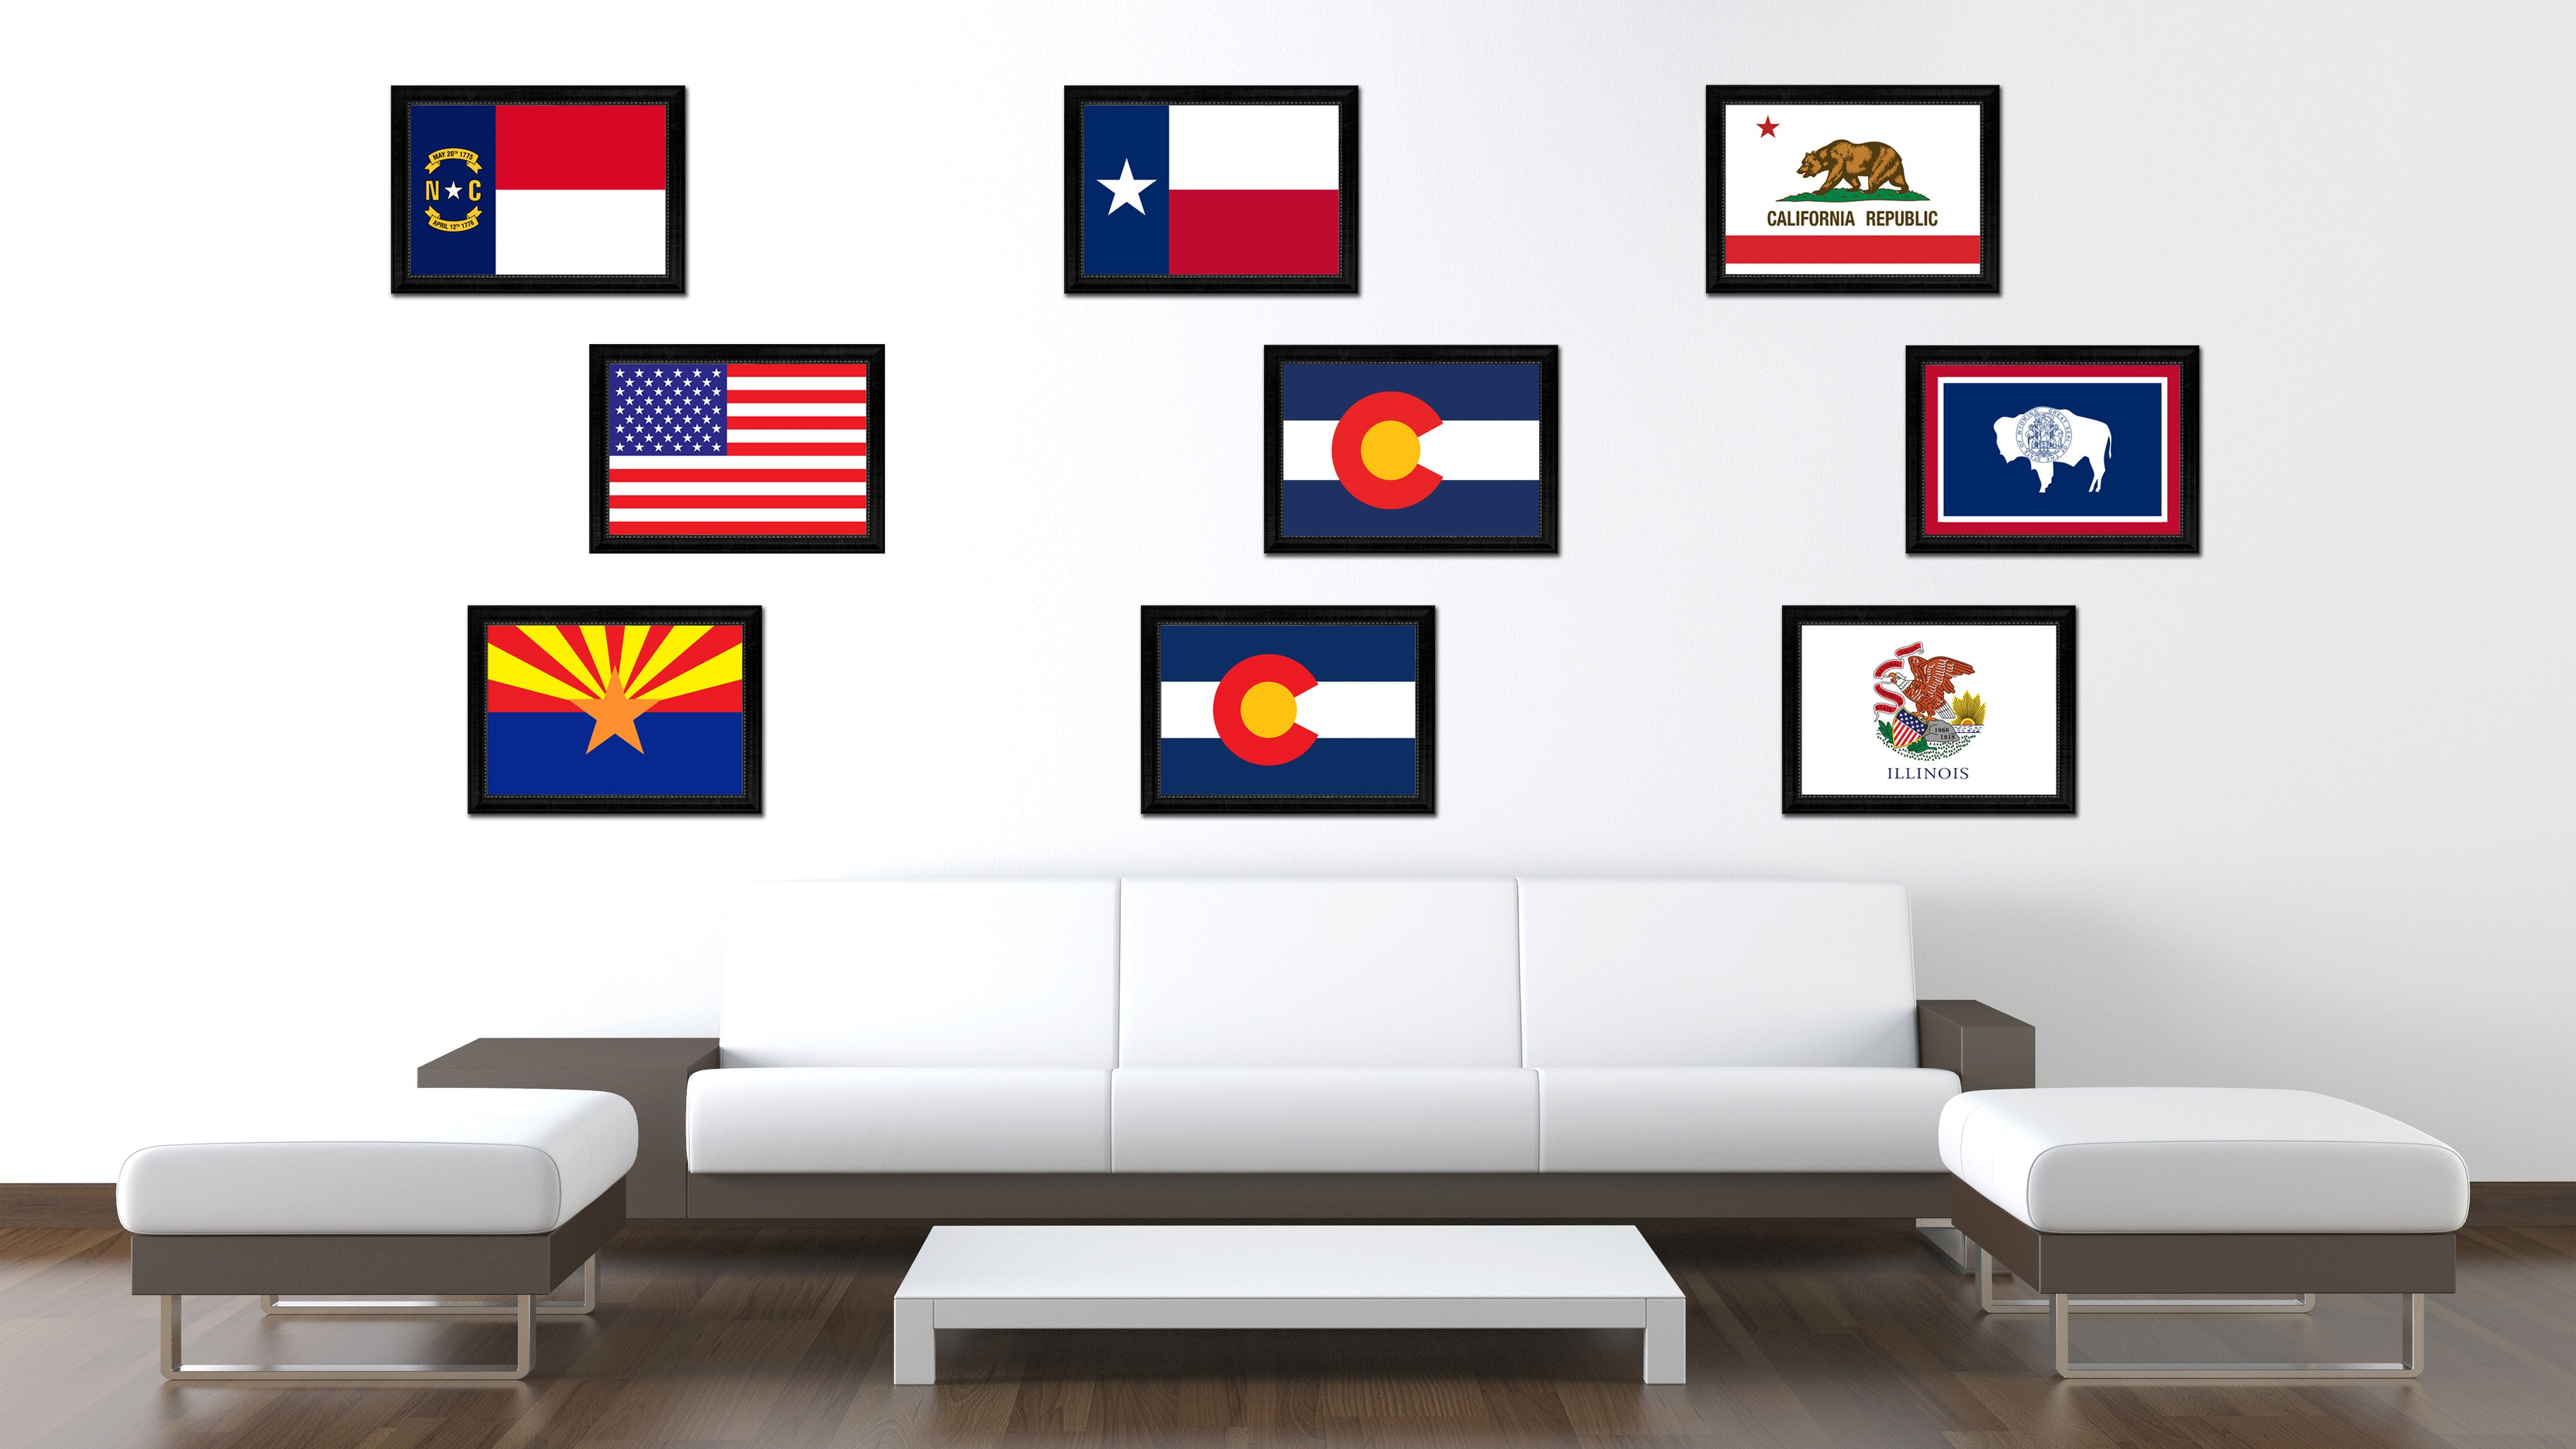 Interior Design Gifts Colorado State Flag Home Decor Office Wall Art Livingroom